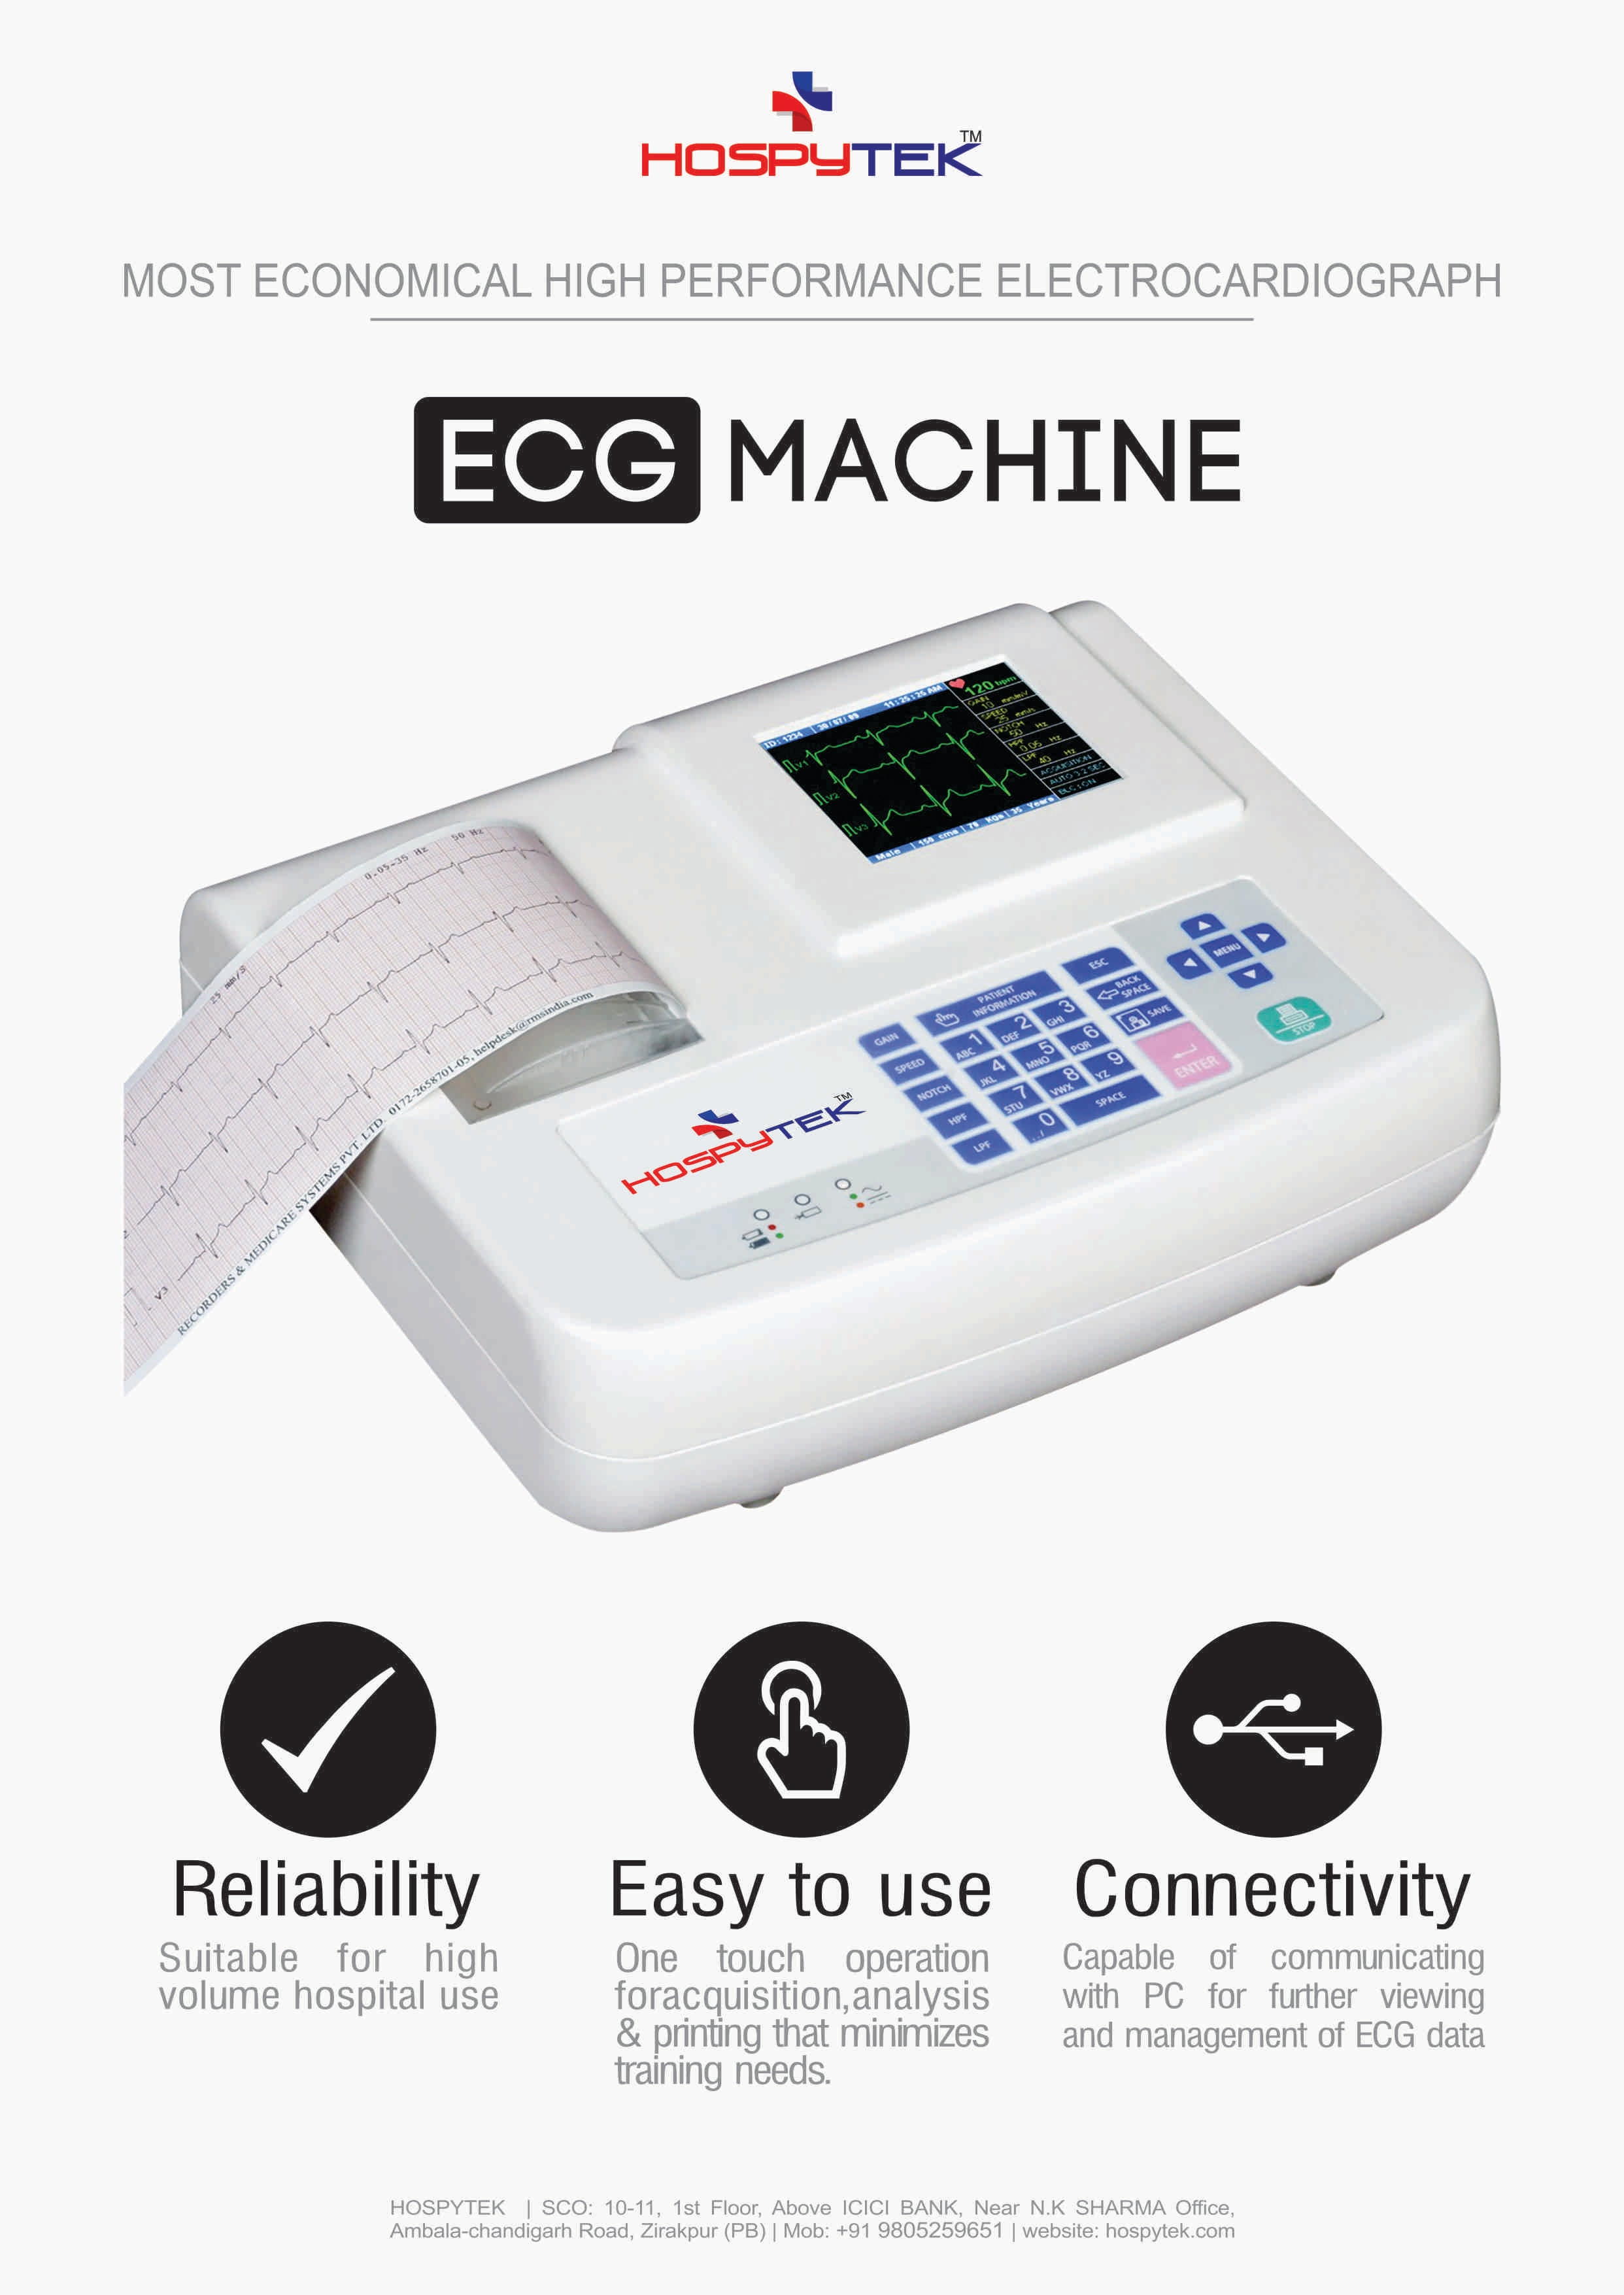 HOSPYTEK is leading manufacturer of Tele ECG, ECG machines in India, We have complete range of EKG machines which include single channel ECG, 3 channel ECG & 12 channel ECG machine. Our portable ECG machines have some of the unique features having Color TFT, Direct USB A4 Printouts, USB Storage facility at very affordable price. HOSPYTEK manufactures the High quality & cost effective ecg for price sensitive Indian market. We also manufacture PC Based ECG machines which can be used with laptop for tele camping purposes. Our all portable & PC based ECG machines are compatible with the HOSPYTEK Tele Medicine Solution, we also do the OEM ECG machine design & development for more detail kindly get in touch by  sales@hospytek.com  Our Electrocardiograph machines are one of the basic diagnostic tools for cardiologists and general physicians. They can be used to perform routine diagnostic checks. The machines are simple to use and precise, thus, making the diagnosis easy to perform and analyze. Hospytek  ECG machines are available in several models suited to the physicians and patient's needs and requirements WE are known for manufacturing, supplying, wholesaling, trading, exporting and importing an extensive array of the finest quality of Medical Instrument. The product range offered by us is inclusive of Hospital Furniture, Surgical Consumables and Diagnostic Equipment. Designed as per the medical industry set norms and regulations, the offered range of equipment and machines is used in hospitals, medical centers, nursing homes and health clinics. With the aid of their accuracy in analysis of different results, user-friendly operation and sturdy construction, the offered diagnostic machines are highly appreciated among our patrons.   Boasting on a very congenial working environment, we work to attain maximum customer satisfaction. An ECG machine is used for graphically recording and monitoring the electrical activity of various phases of heart beat. This is done with the help of electrodes externally attached to the outer surface of skin, on the chest and limbs of patients with heart diseases. It enables monitoring the functions of heart accurately in a very short span of time, there by helping in efficient diagnosis and treatment of heart related problems.  Functions of ECG machine involve recording of the heart beats of patients being examined in the form of waves on a graphic paper. These waves are known as ECG waves. Each electrical stimulus takes the shape of a wave and patterns are formed on the paper with inter related waves. The graphic ECG paper is made up of small squares of 1mm. A standard ECG prints 25 such small squares per second. So duration of a particular wave is easily calculated in a given time span. 10 small squares vertically equal to one mille volt. In this way, amount of voltage released by heart is also measured. If the graph is flat at any time without waves, it means no electrical activity is happening at that particular moment. To understand the functioning of ECG machine, one needs to be aware of the basic functions and working of heart. Heart is composed of four chambers making up two pumps. The right pump receives blood from the body and pumps it to the lungs. The left pump gets blood from the lungs and pumps it to other parts of the body. Each pump has two chambers Atrium and Ventricle. Atrium collects the blood and sends it to the ventricle. On contraction of ventricle, blood is pumped from the heart to the body.  Electrical impulses created in the pacemaker region of right atrium cause contraction, thereby pushing the blood to ventricle. When the impulse moves to the ventricle, it causes contraction in ventricle and pushes blood away from the heart. Soon as the impulse moves away from heart, it relaxes. These electrical impulses flowing in the body can be measured from the body surface in the form of electrical currents at specific areas. ECG machine reads these currents with the help of electrodes attached to the skin of the body.  Each heart beat produces three different pulses of ECG waves. The first pulse is known as P wave and represents the electrical signal produced by pacemaker. The second is a larger signal and called QRS complex which represents the signals created by relaxation of atrium and contraction of ventricle. The last one of the cycle is called the T wave which represents relaxation of ventricle. The heart sound represents this compound of QRS complex and T waves.  An ECG machine is capable of capturing and recording all these functions of the heart in a graphical form enabling accurate diagnosis and treatment of functions of the heart. By studying the movements of these ECG waves depicted by ECG machines, doctors can easily study the heart beat variations. This helps them in locating the defects of heart functions and thereby to prescribe the correct treatment.  ECG machine is safe and easy to use as and when required without requirement of any elaborate arrangement. Further, it is very economical for the patient to have ECG reports. For Sales :- sales@hosptek.com